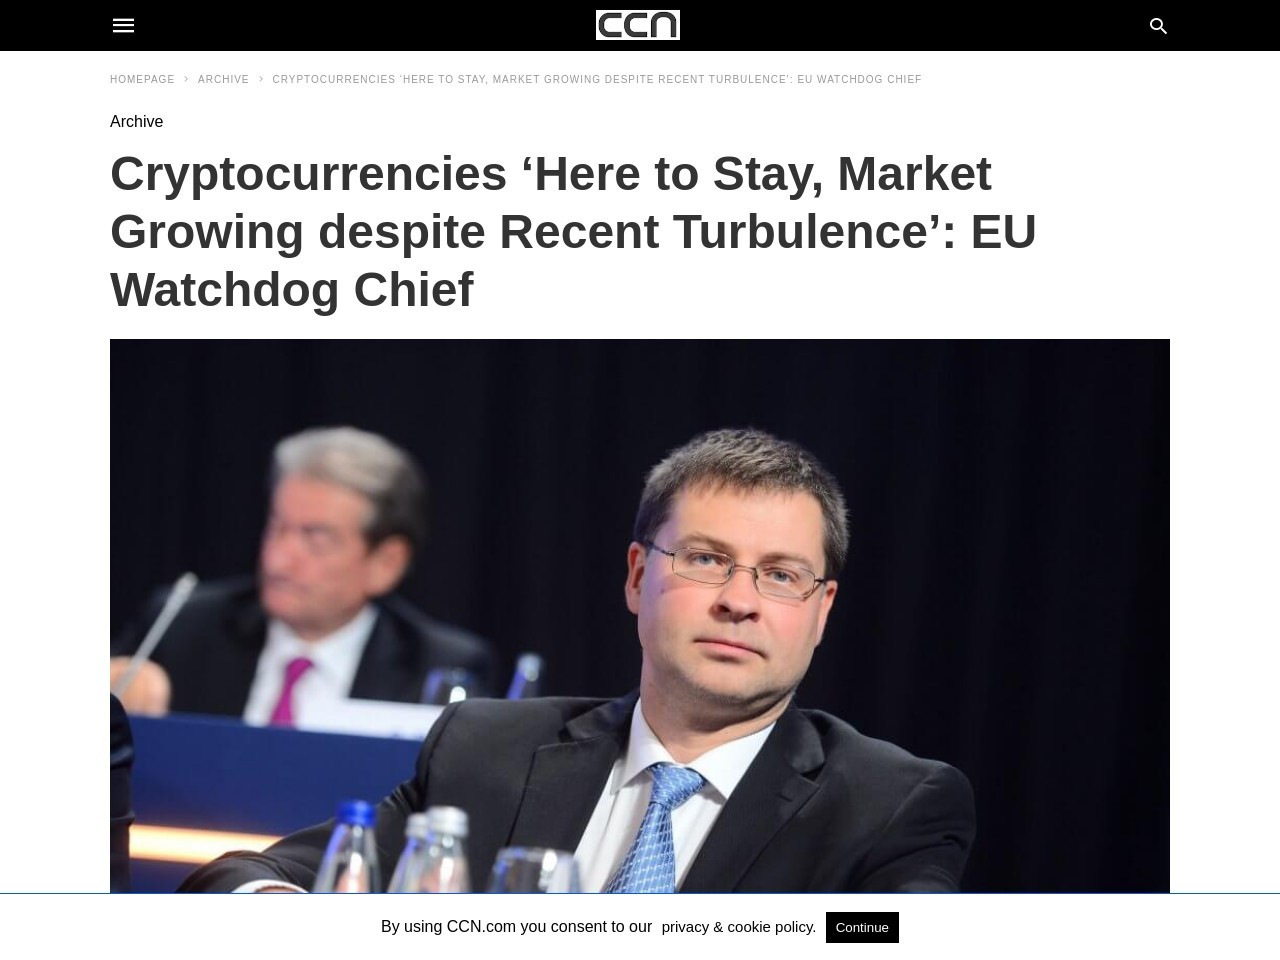 Cryptocurrencies 'Here to Stay, Market Growing despite Recent Turbulence': EU Watchdog Chief